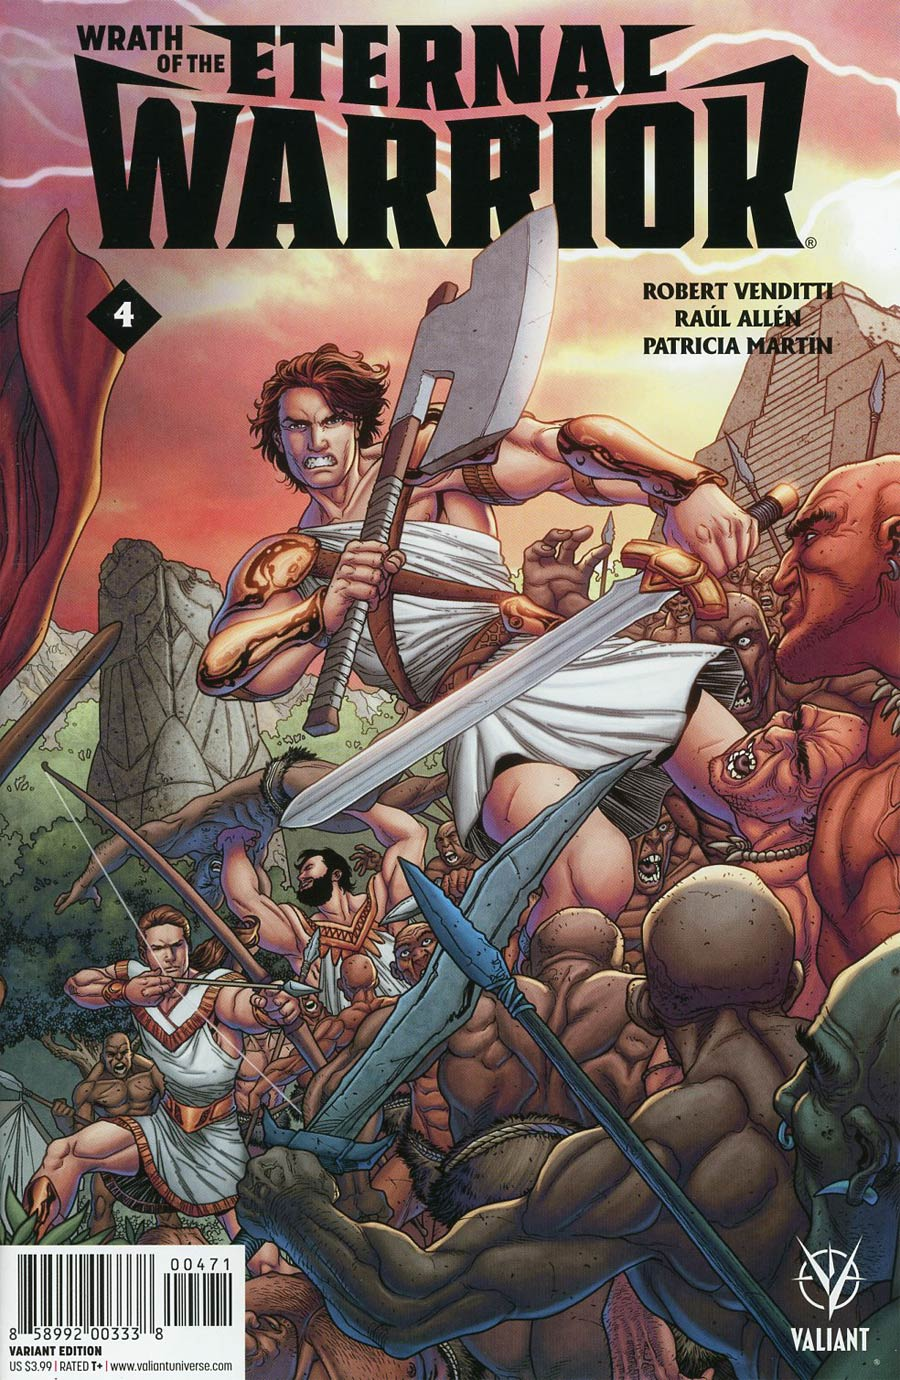 Wrath Of The Eternal Warrior #4 Cover G Midtown Comics Retailer Shared Exclusive Variant Cover